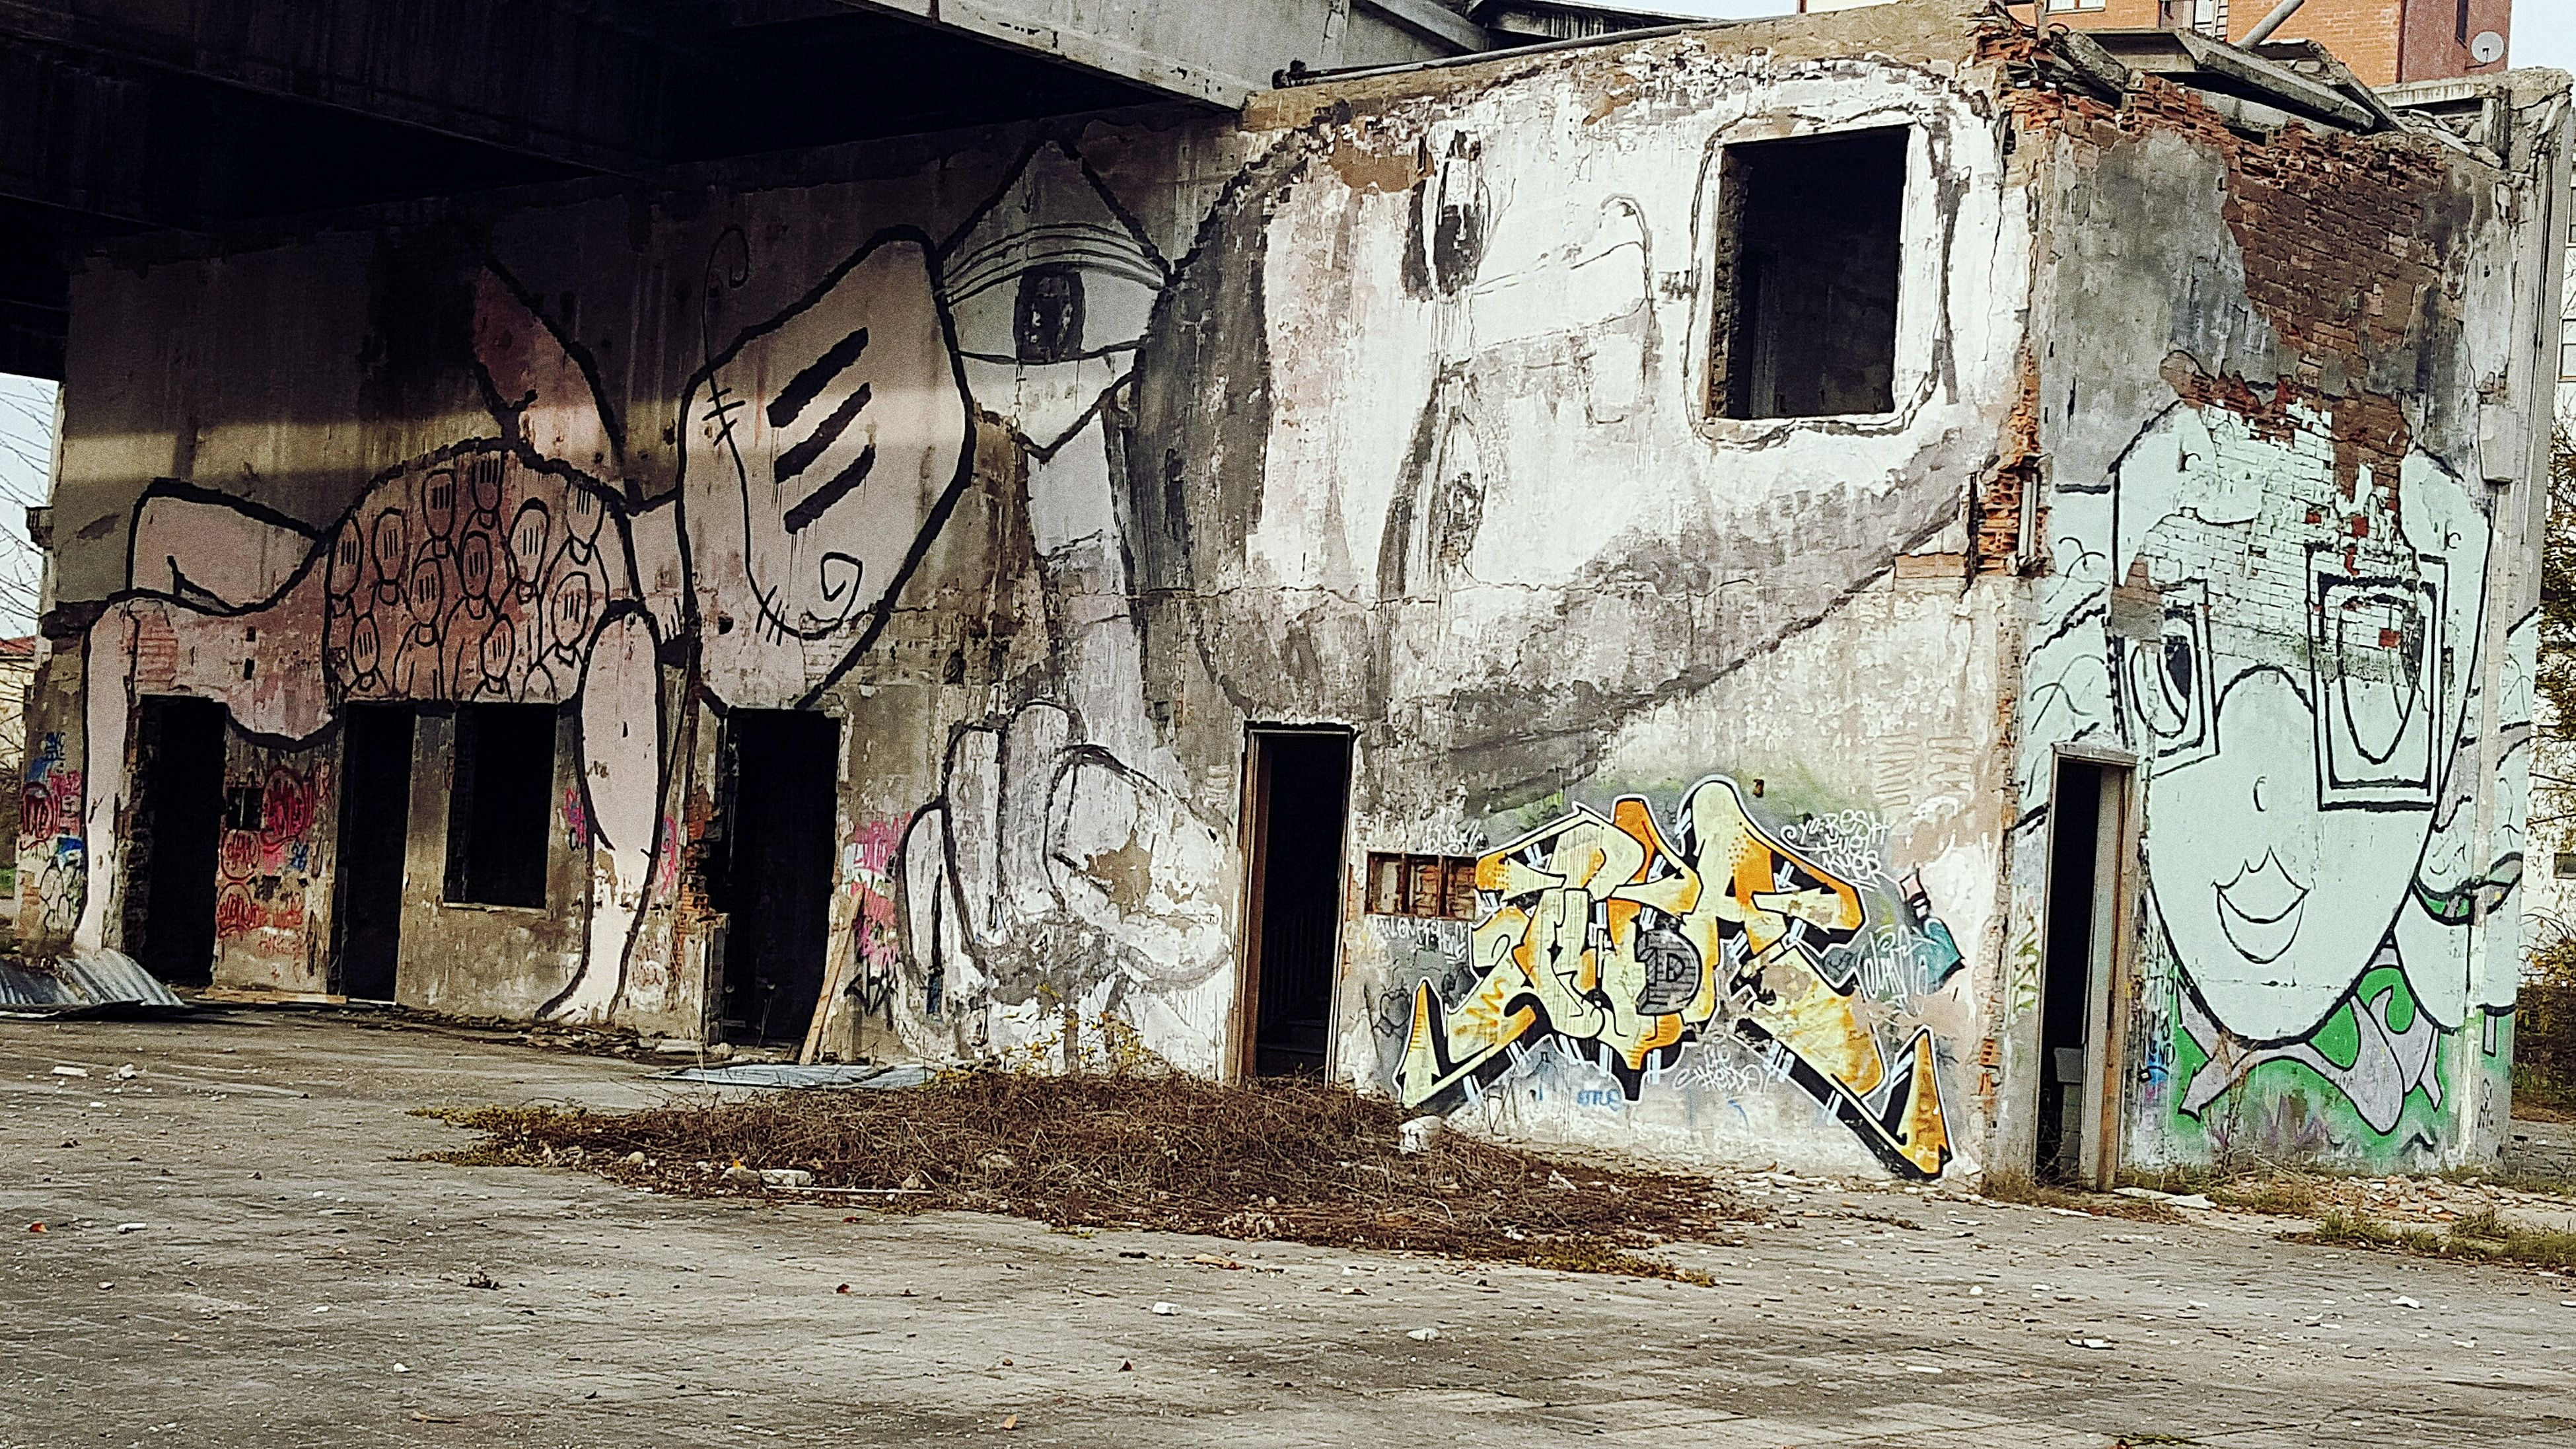 architecture, built structure, building exterior, graffiti, abandoned, window, wall - building feature, house, damaged, building, old, obsolete, residential structure, wall, deterioration, residential building, weathered, run-down, door, brick wall